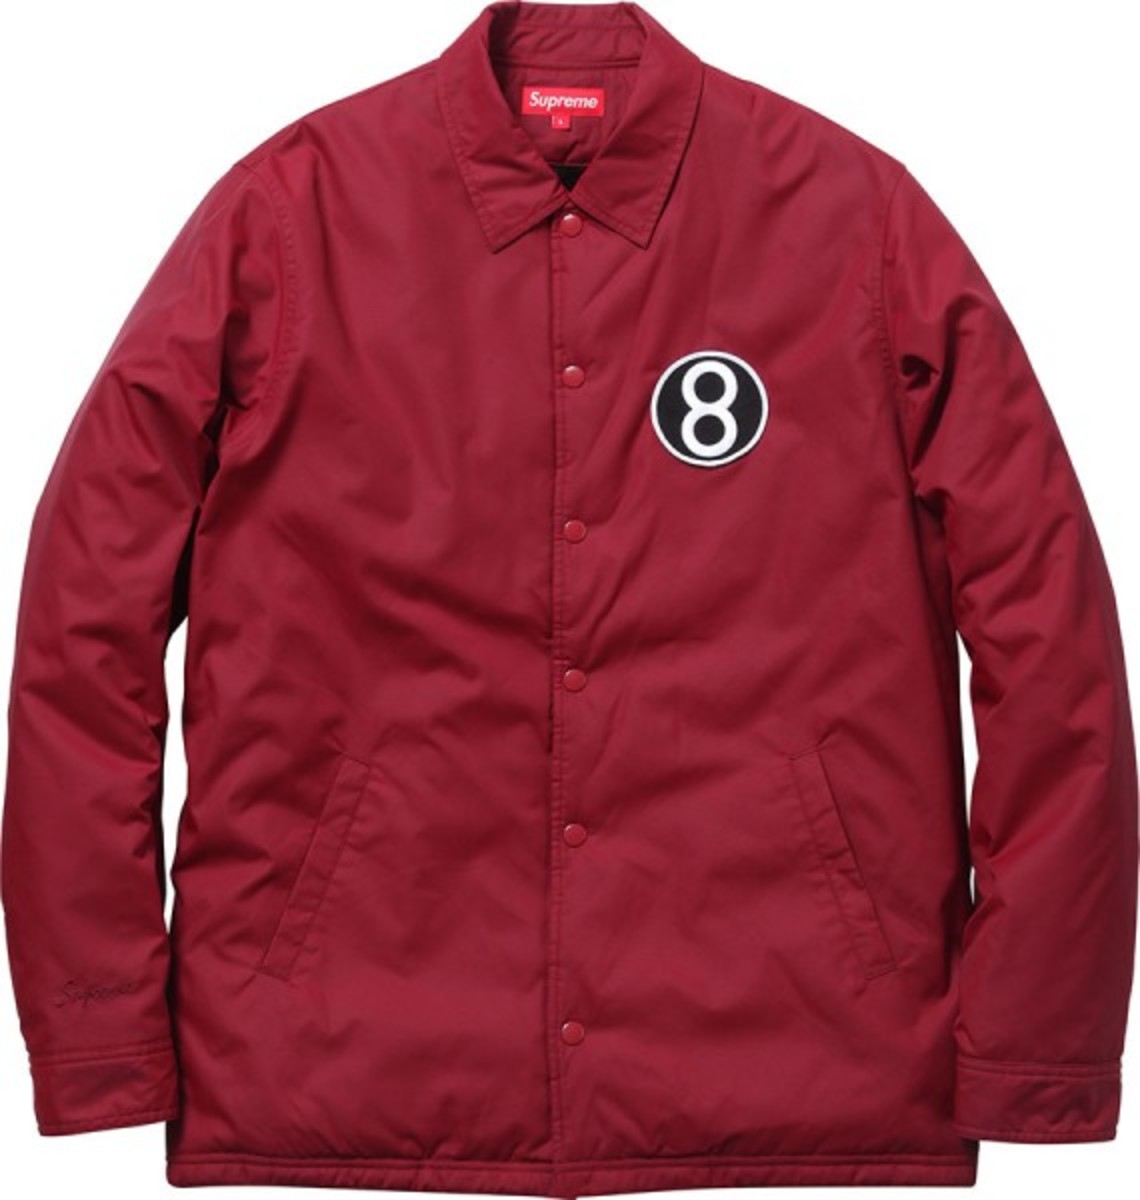 8-8_ball_coaches_jacket-zoom_1345455025